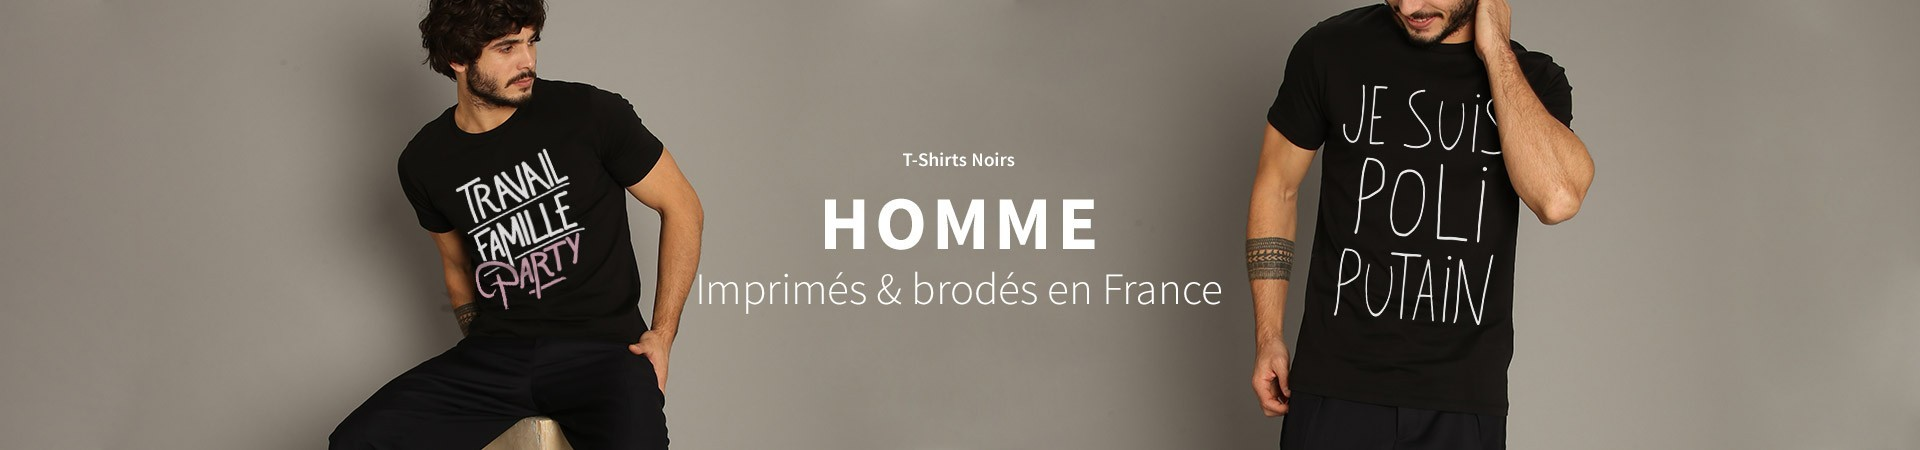 T-Shirts Noirs